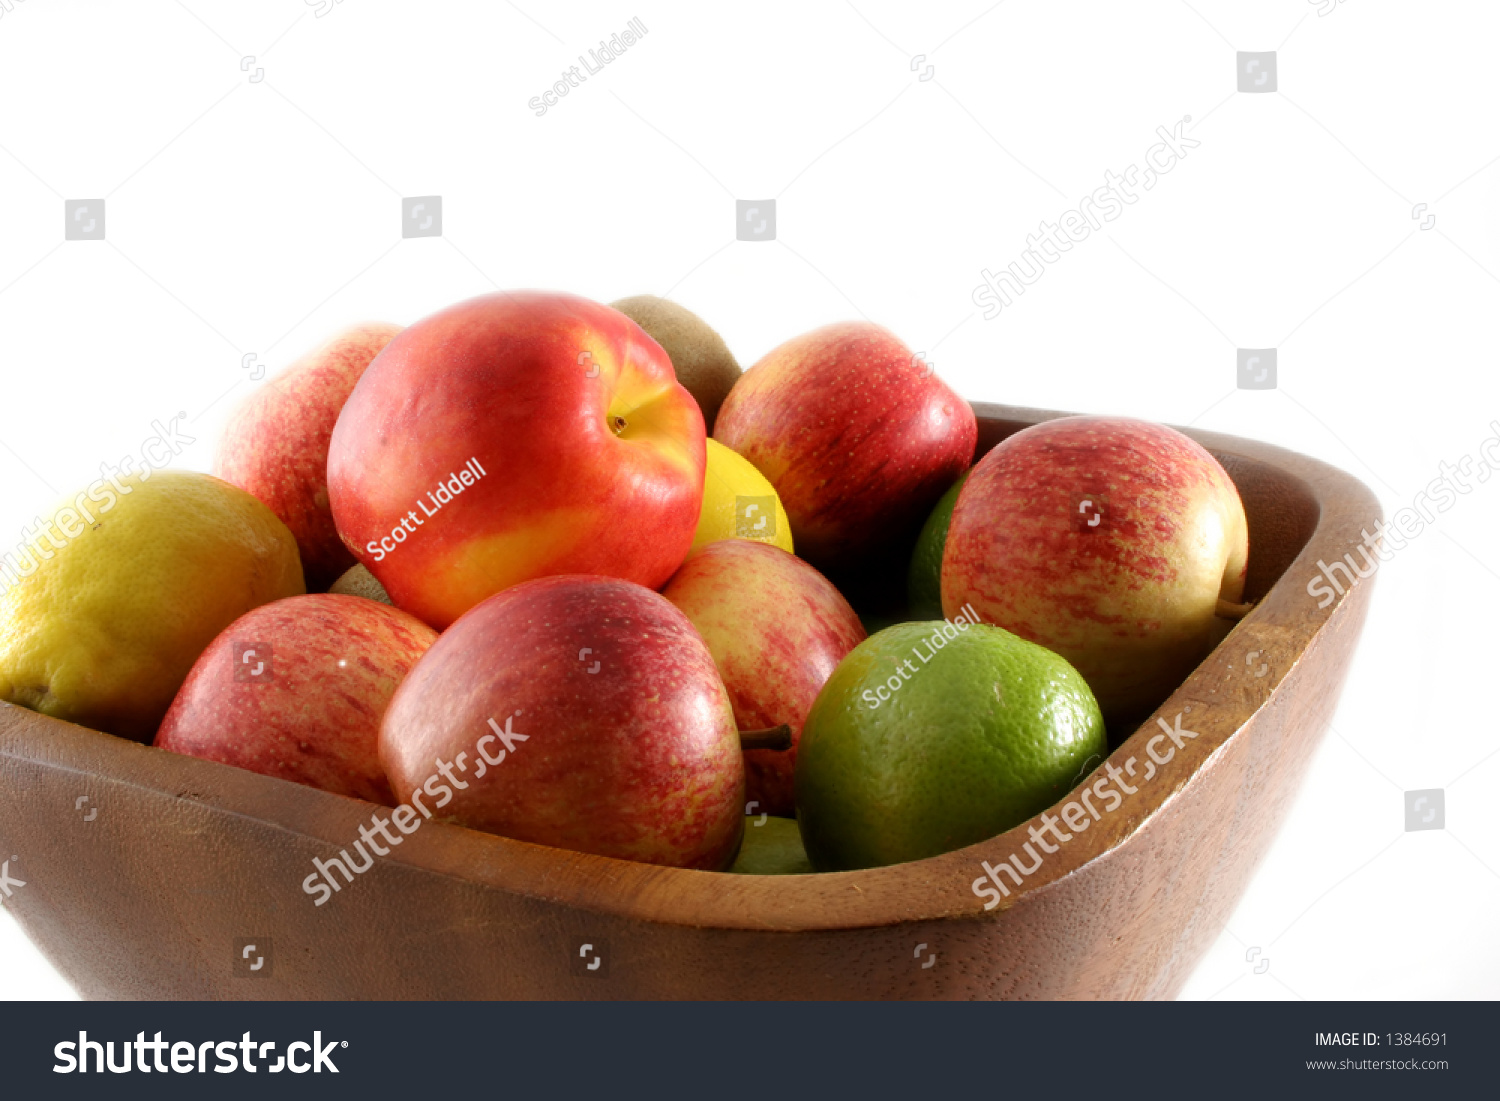 Colorful Fruit Bowl Colorful Display Of Fruit Isolated In A Wooden Bowl Stock